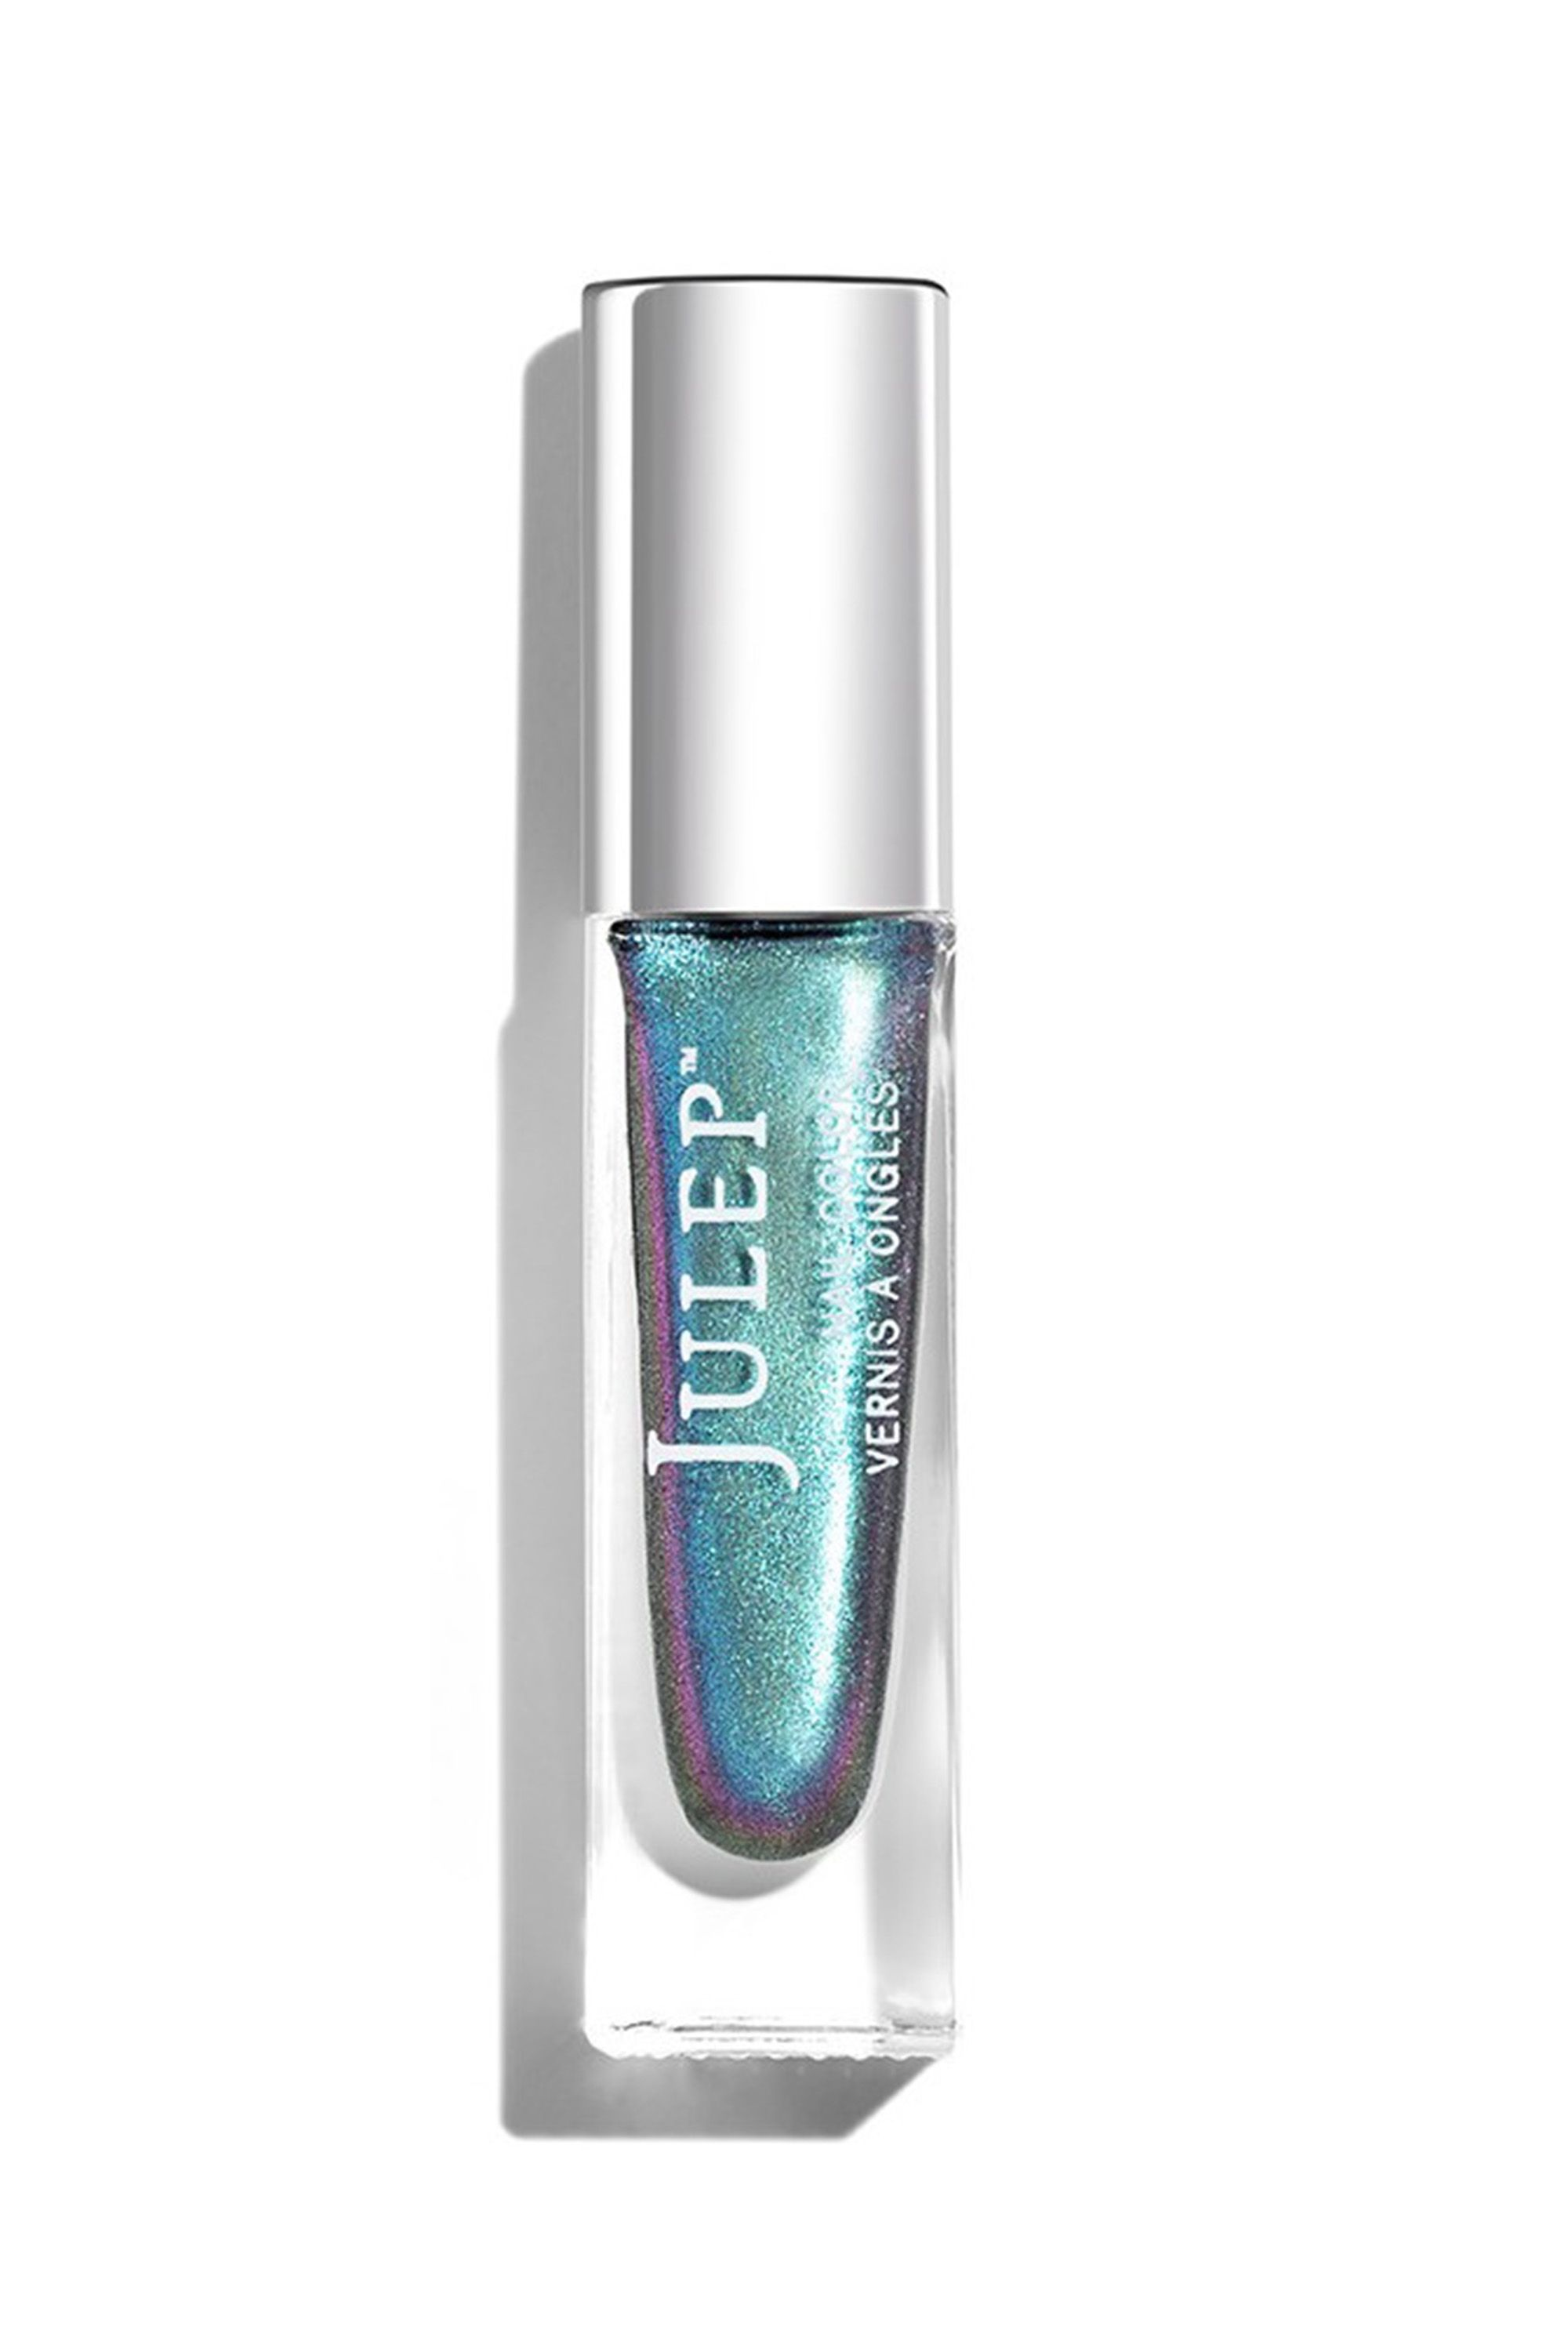 "<p>Julep Zodiac Collection Nail Polish in Aquarius, $14; <a href=""http://www.ulta.com/zodiac-collection-nail-polish?productId=xlsImpprod16281047&sku=2515259&cmpid=PS_Non!google!Product_Listing_Ads&cagpspn=pla&CATCI=pla-258456467402&CAAGID=33247891643&CAWELAID=330000200001188269&catargetid=330000200000860972&cadevice=c&gclid=COuVoMbn5dQCFctLDQodz8sJDA"" target=""_blank"" data-tracking-id=""recirc-text-link"">ulta.com</a> </p><p><span class=""redactor-invisible-space"" data-verified=""redactor"" data-redactor-tag=""span"" data-redactor-class=""redactor-invisible-space""></span></p>"